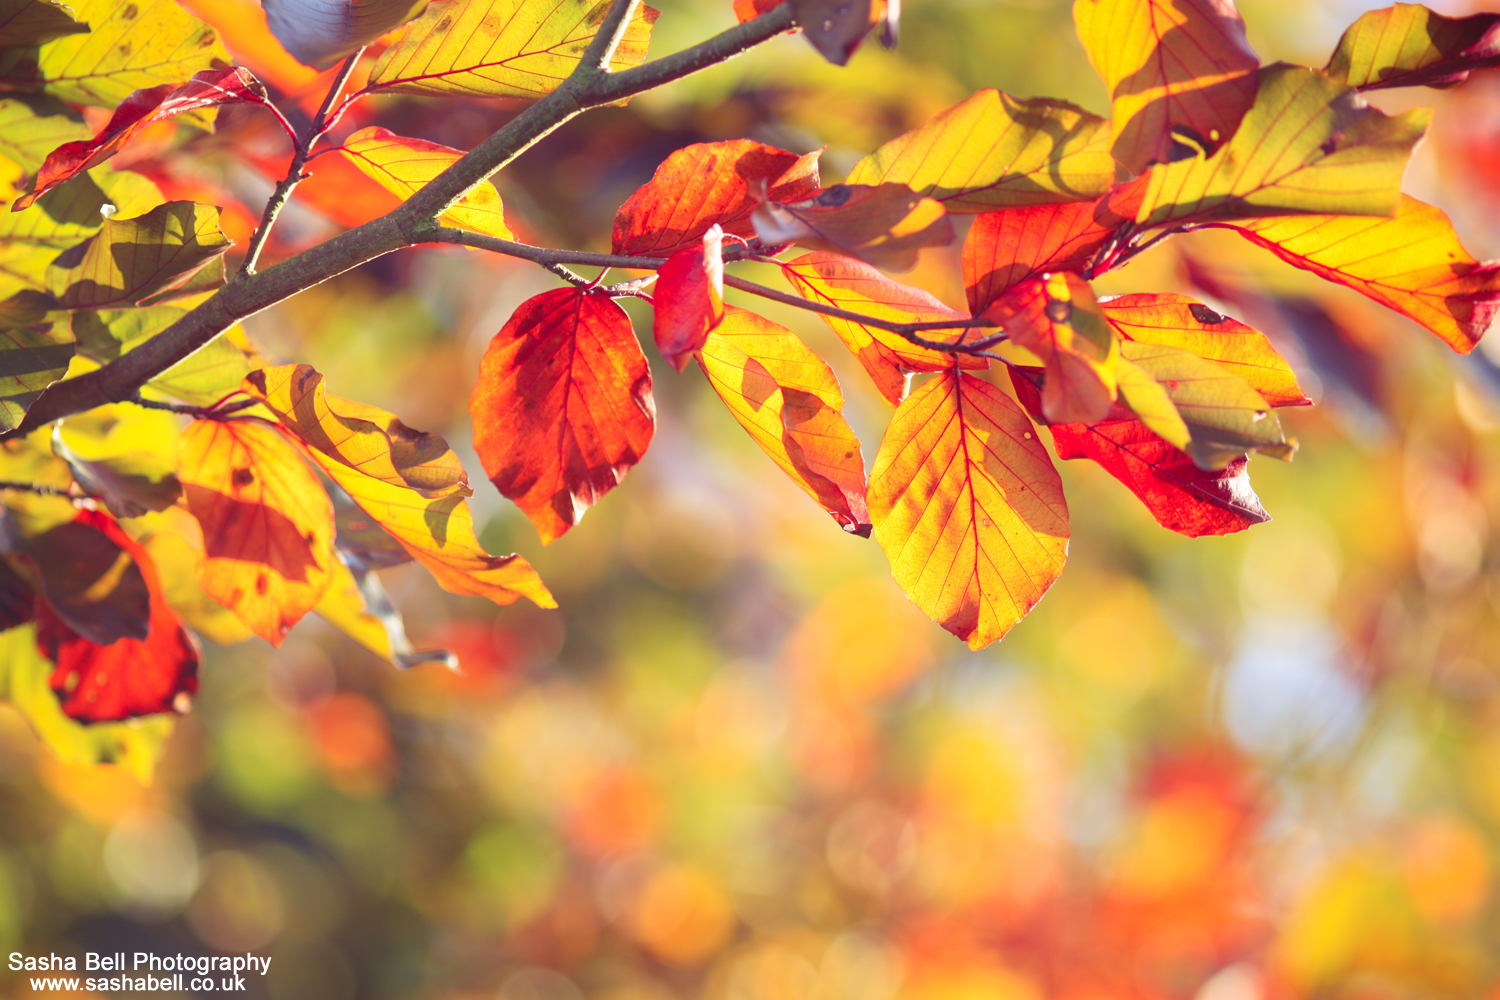 The Colours of Autumn – #47 of #50